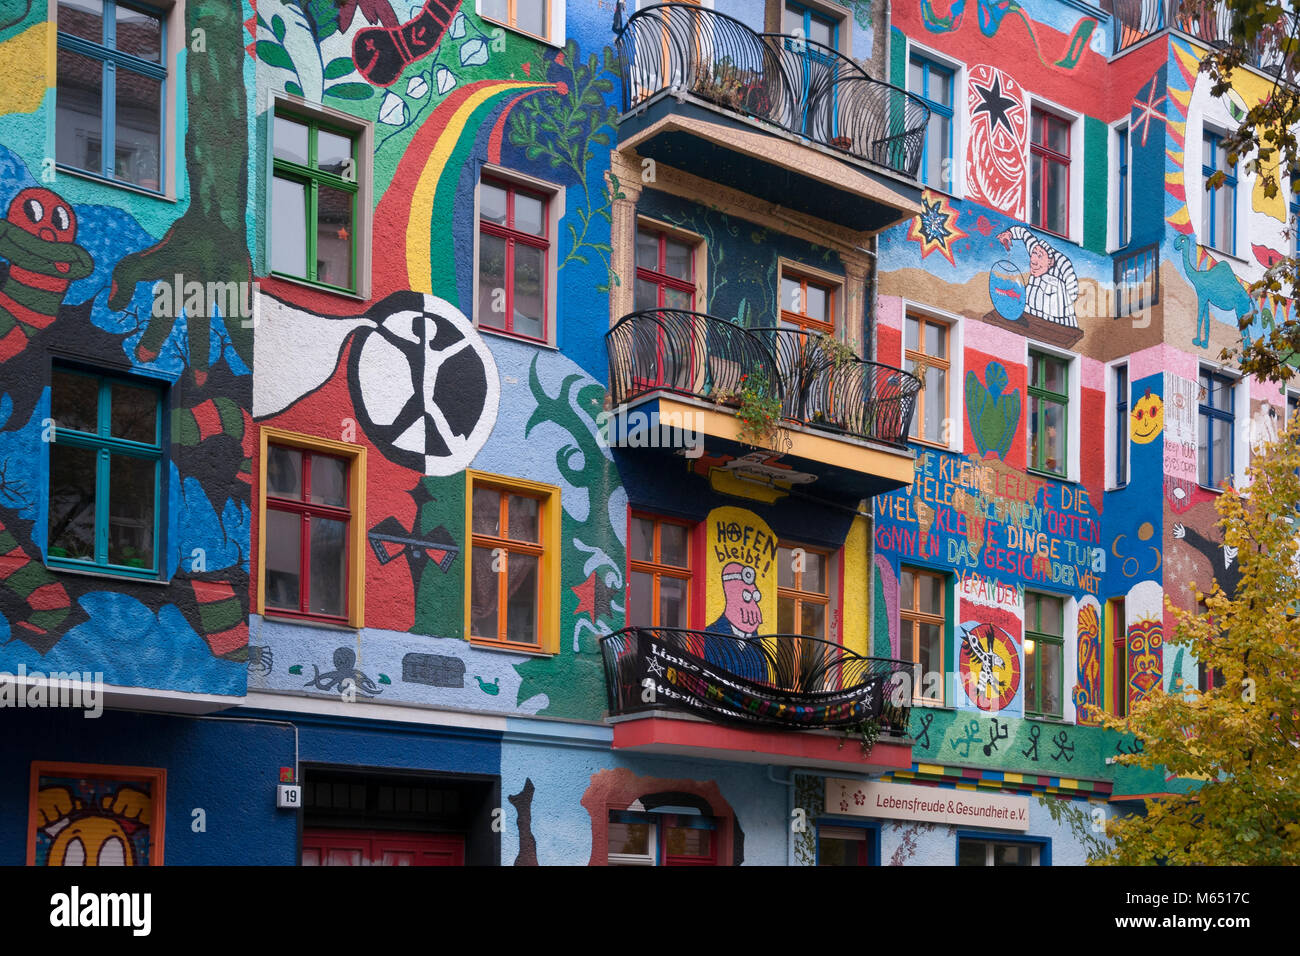 Awesome Hausfassade In Berlin, Deutschland, Europa Stockbild